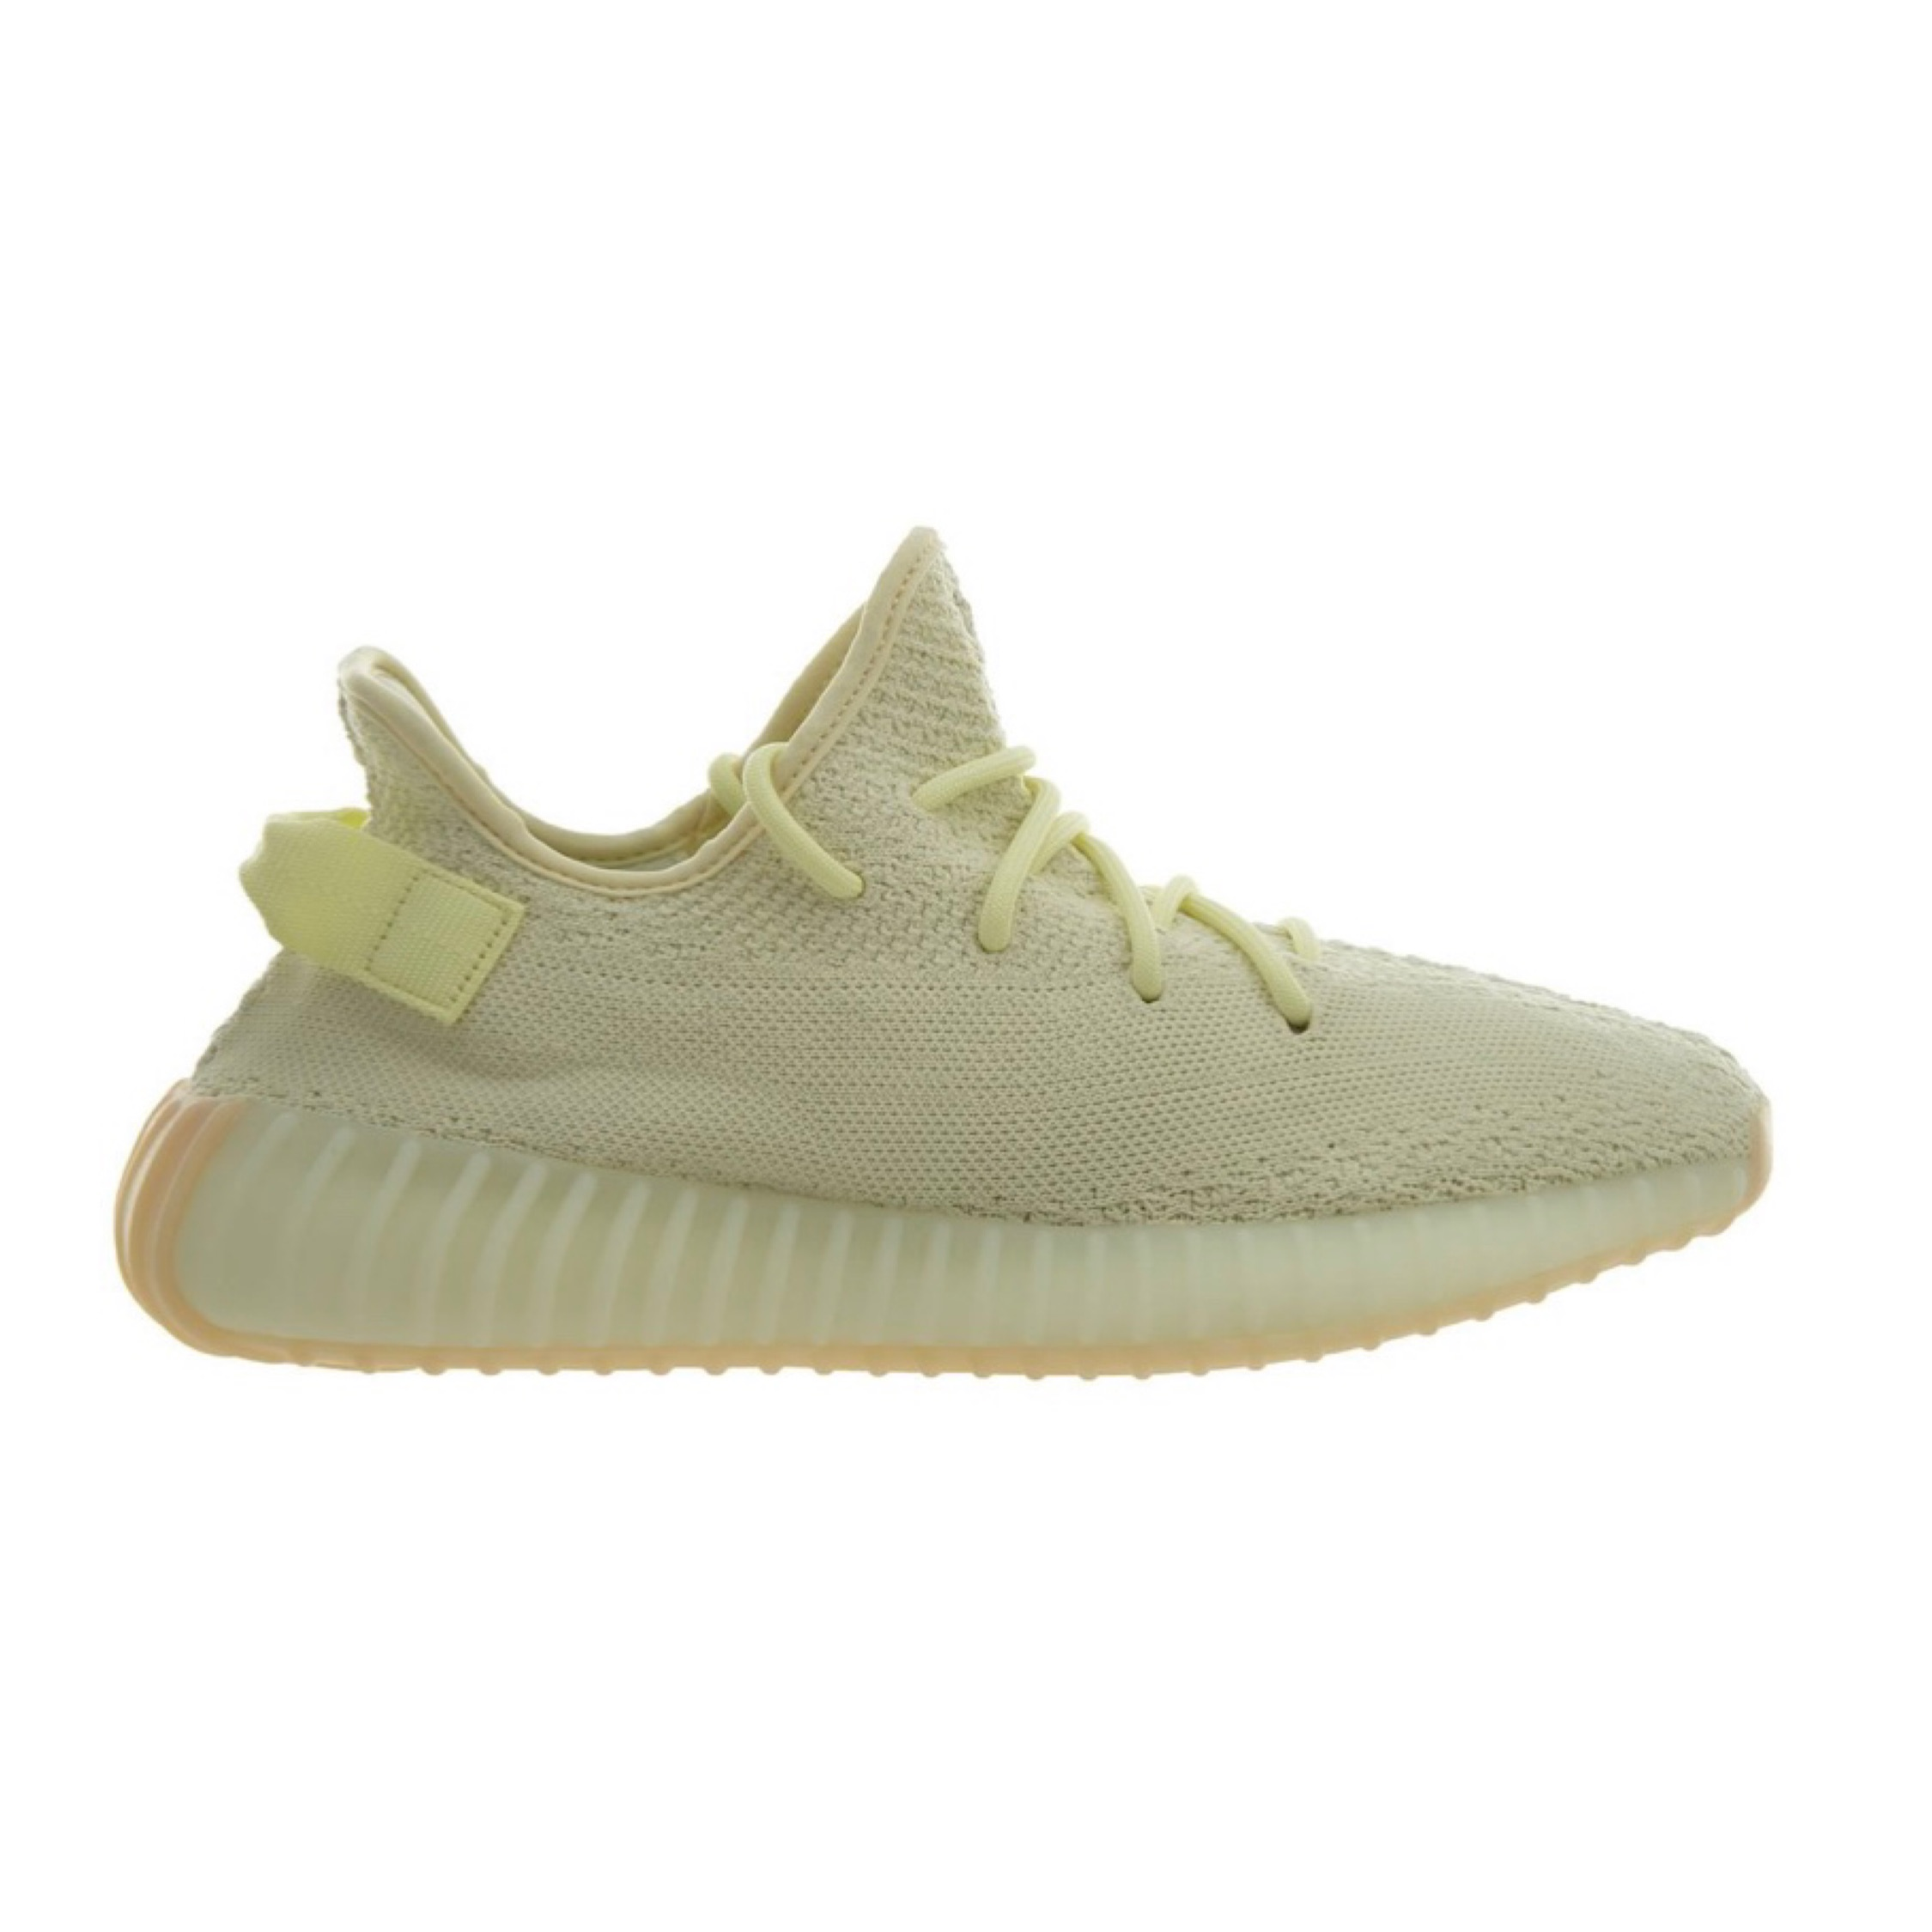 Adidas Yeezy Boost 350 V2 Butter Size 6 11